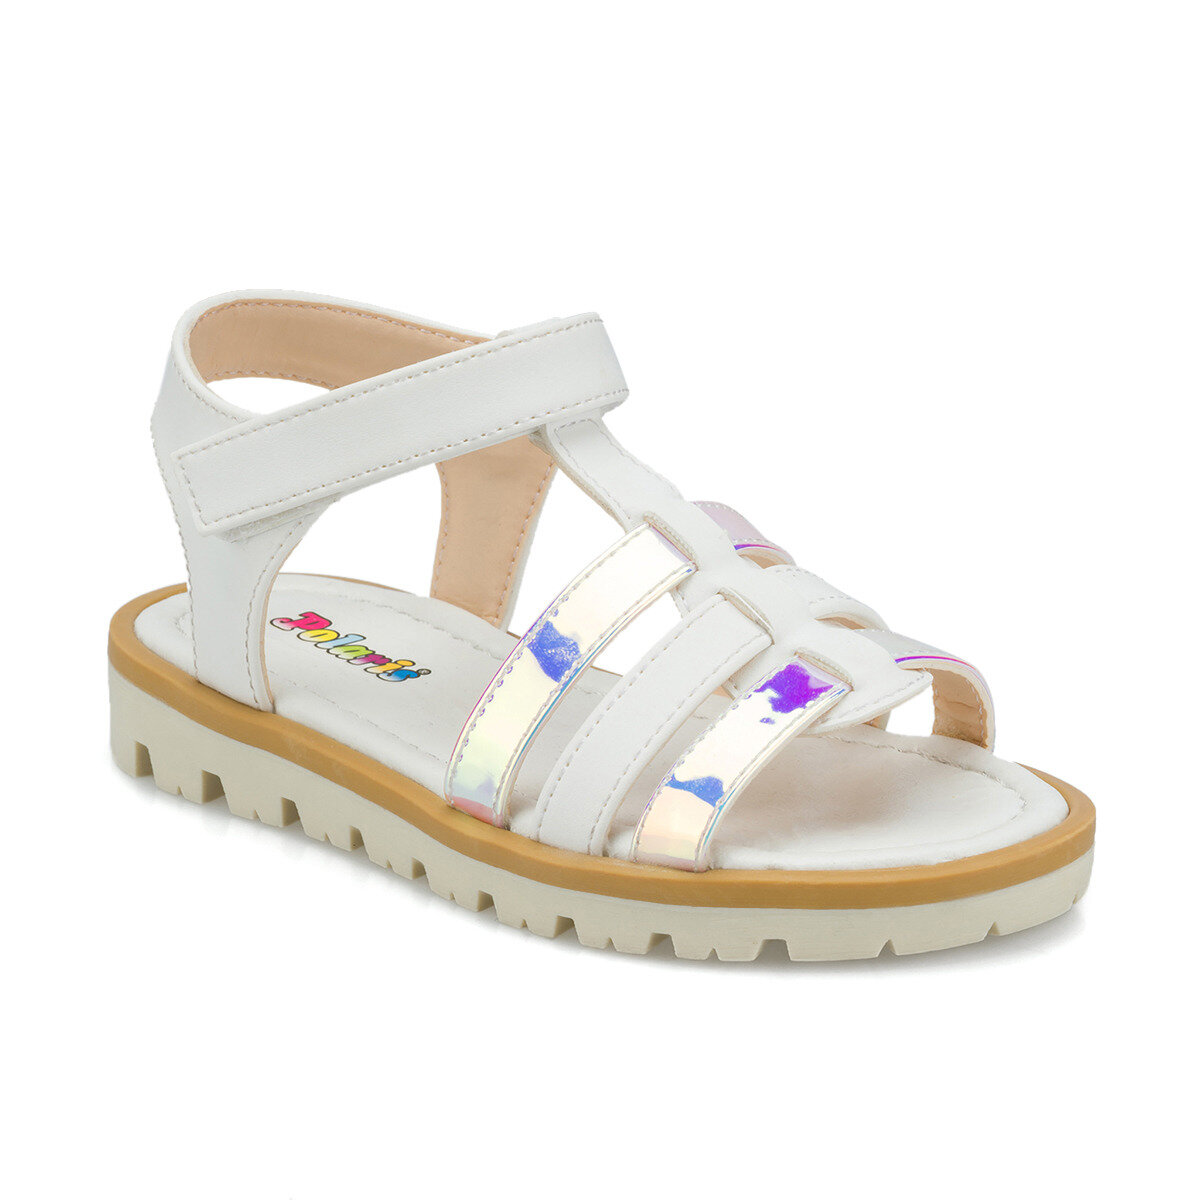 FLO 512342.P White Female Child Sandals Polaris